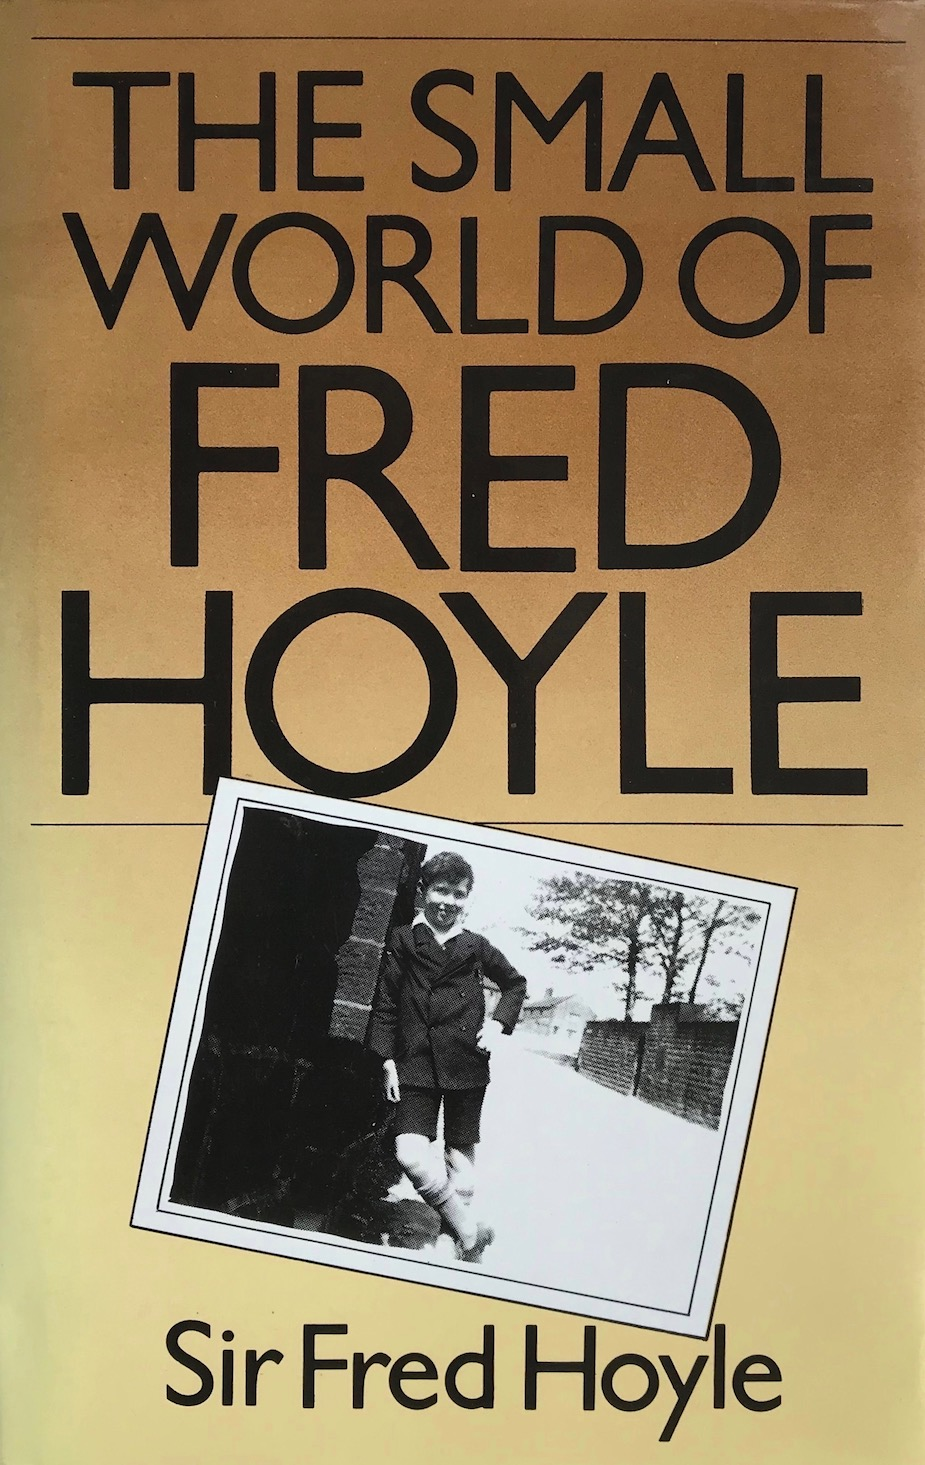 Sir Fred Hoyle: The Small World of Fred Hoyle, 1986. £15